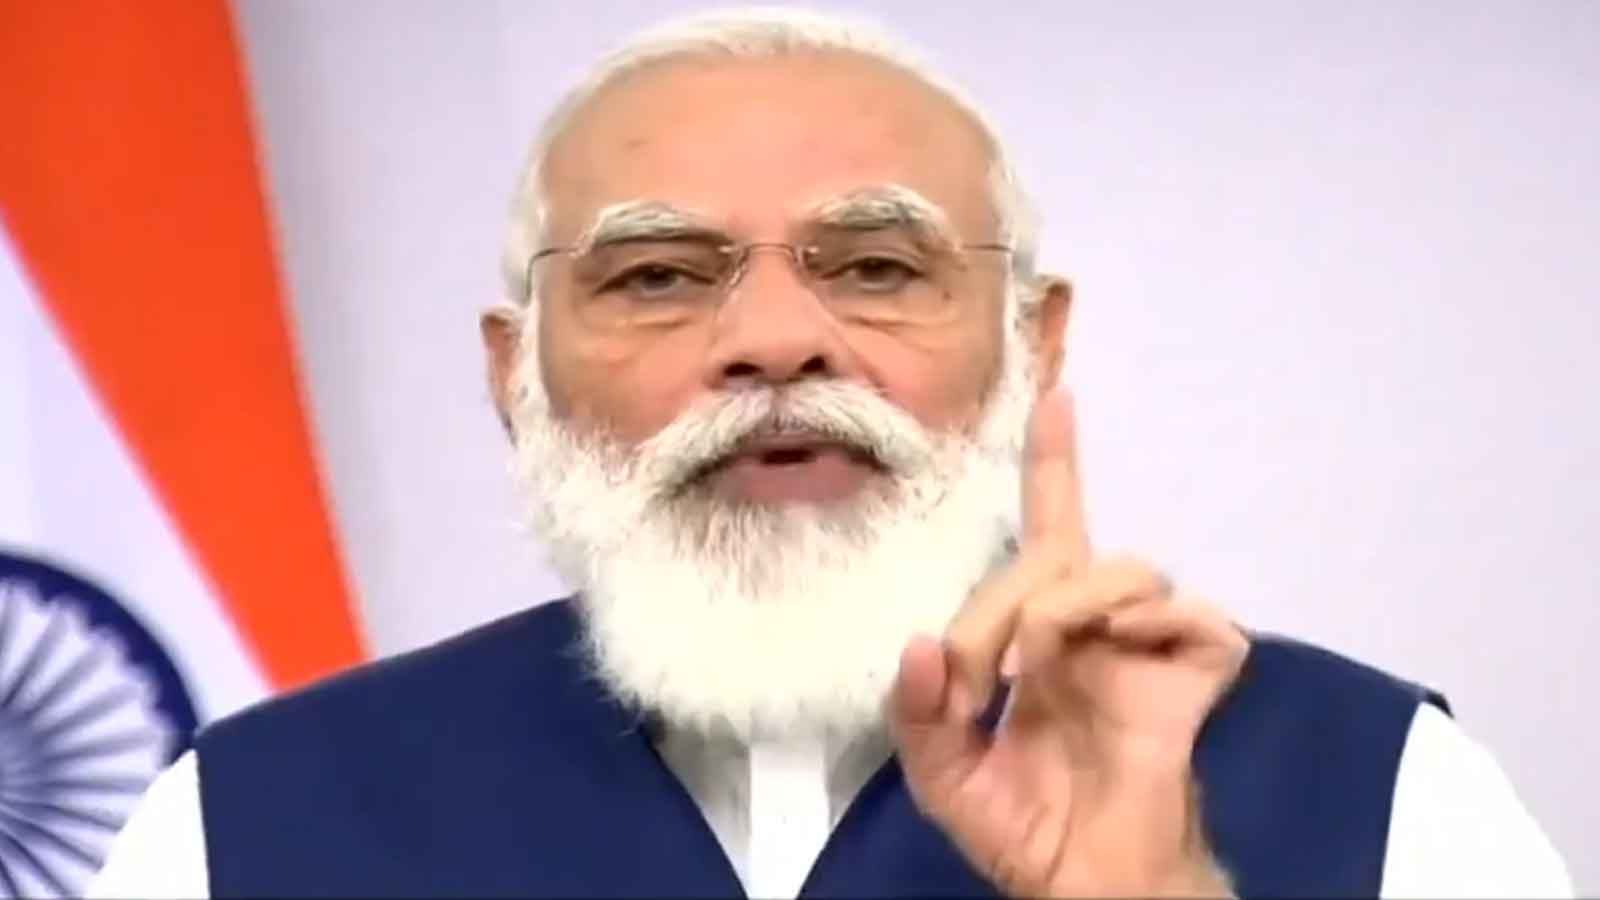 reform-perform-transform-india-has-made-great-efforts-to-bring-about-transformation-in-lives-of-millions-of-its-citizens-says-pm-modi